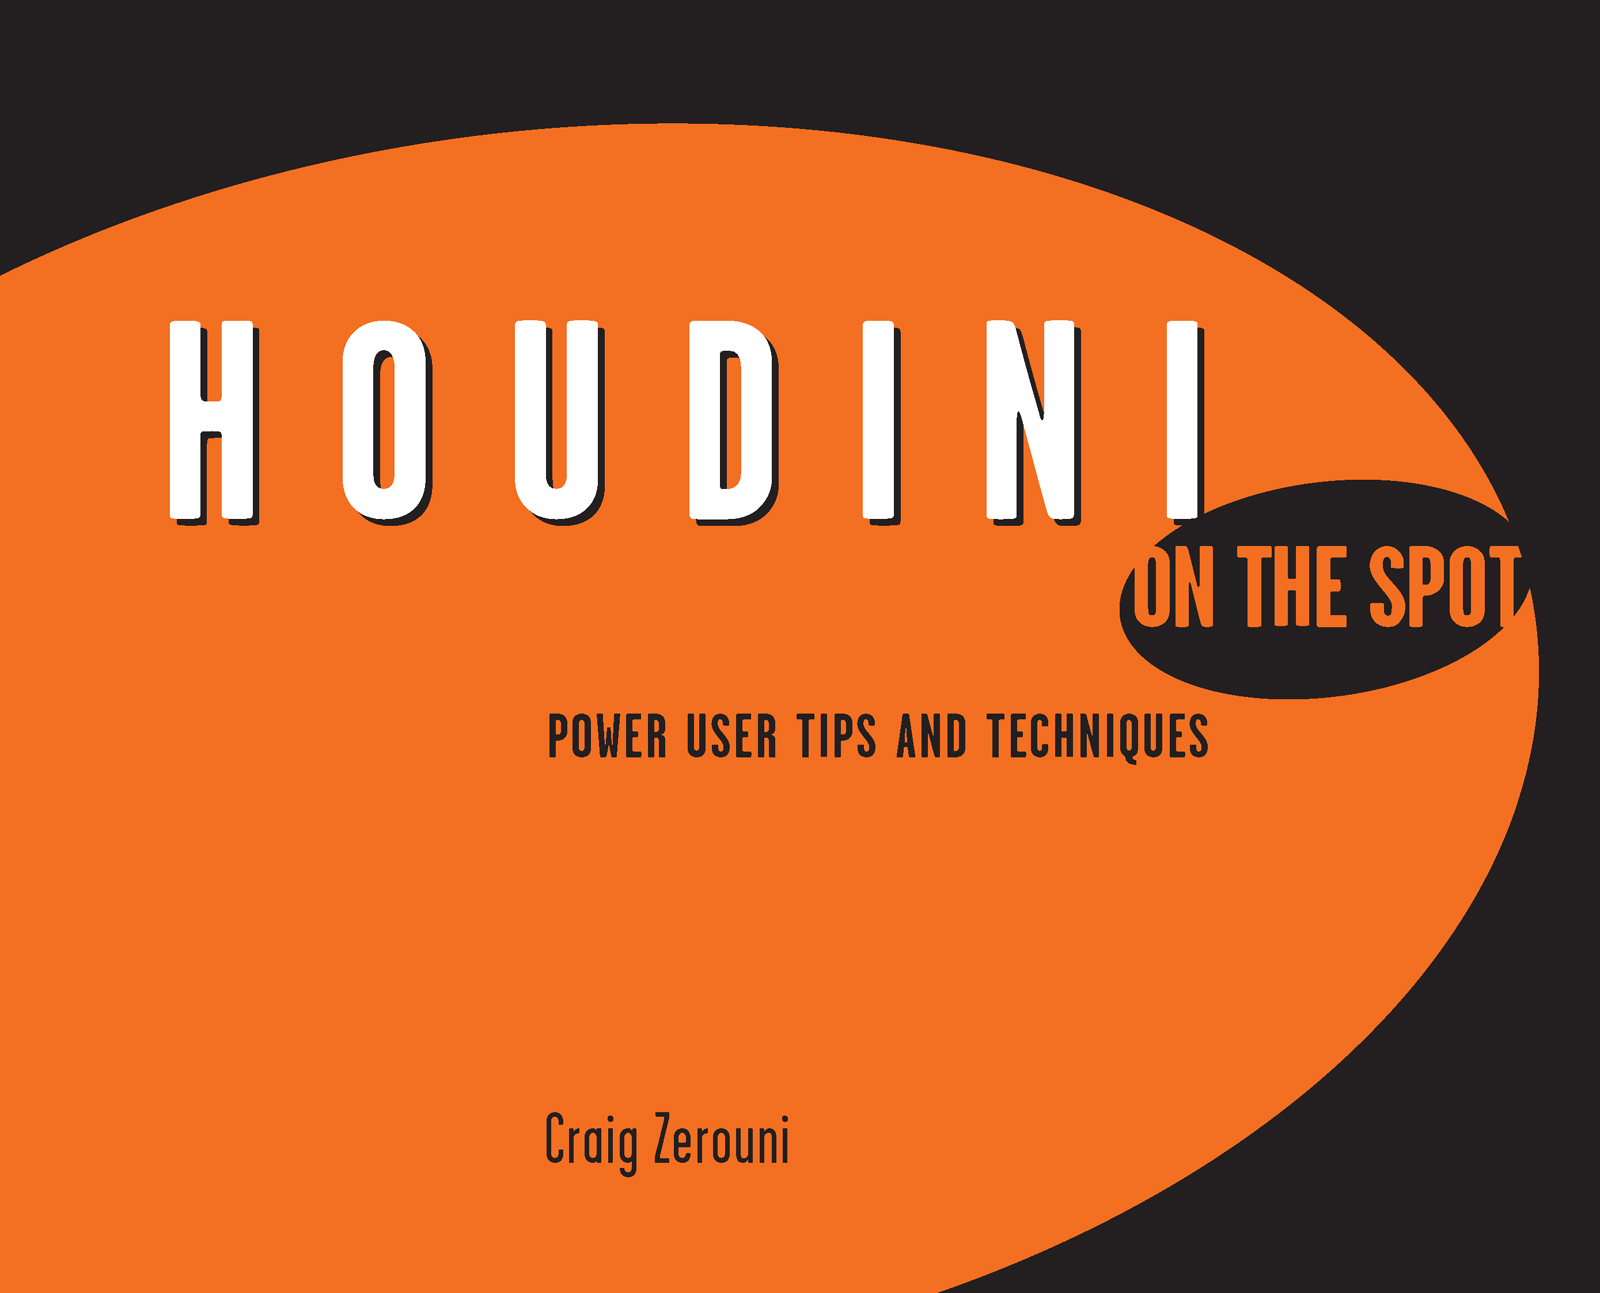 Houdini On the Spot: Power User Tips and Techniques book cover